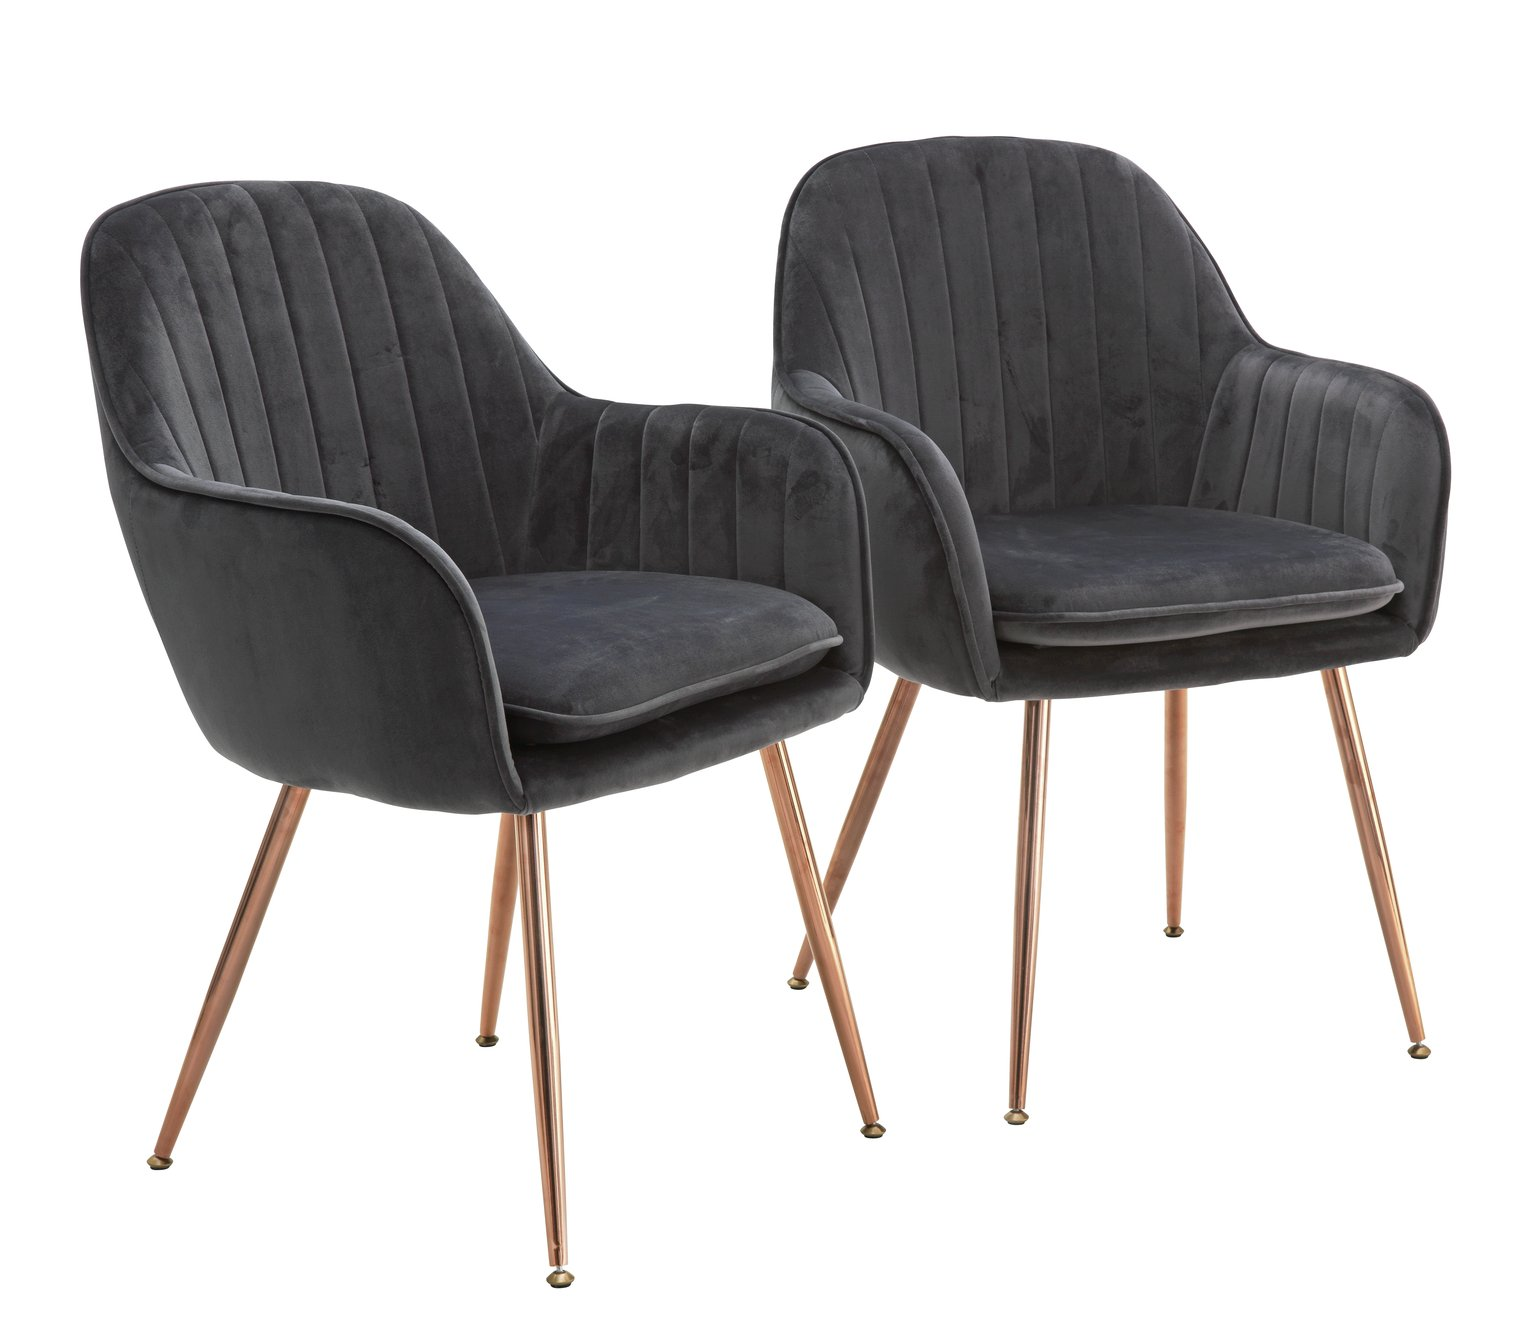 Argos Home Bella Pair of Velvet Dining Chairs - Charcoal